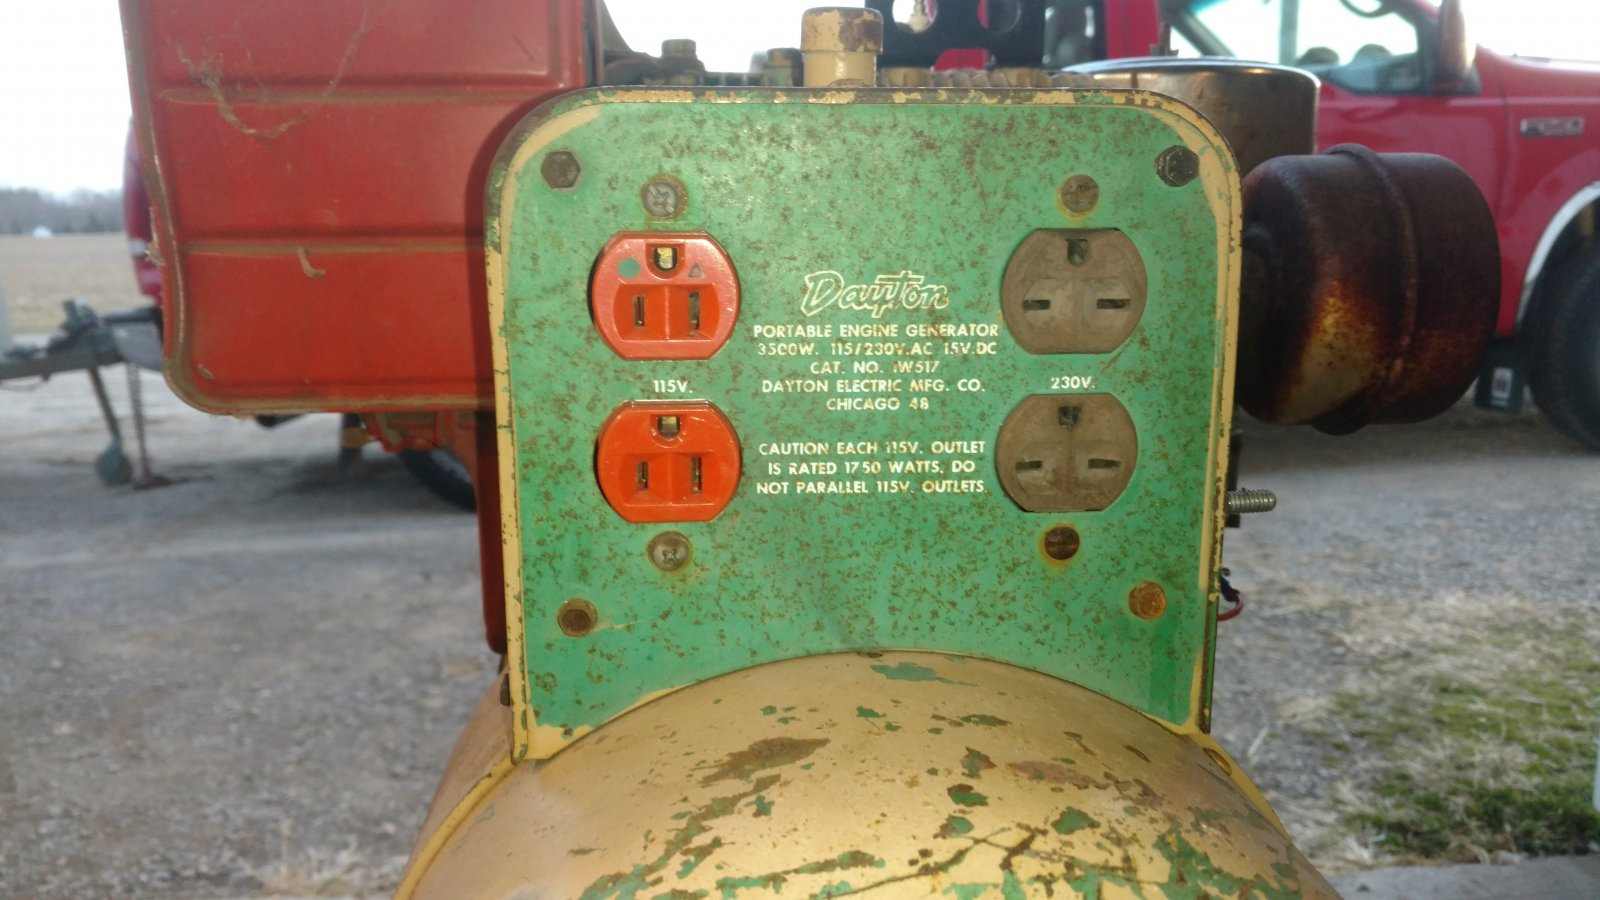 Dayton generator barn find - Show & Tell - Simple trACtors on